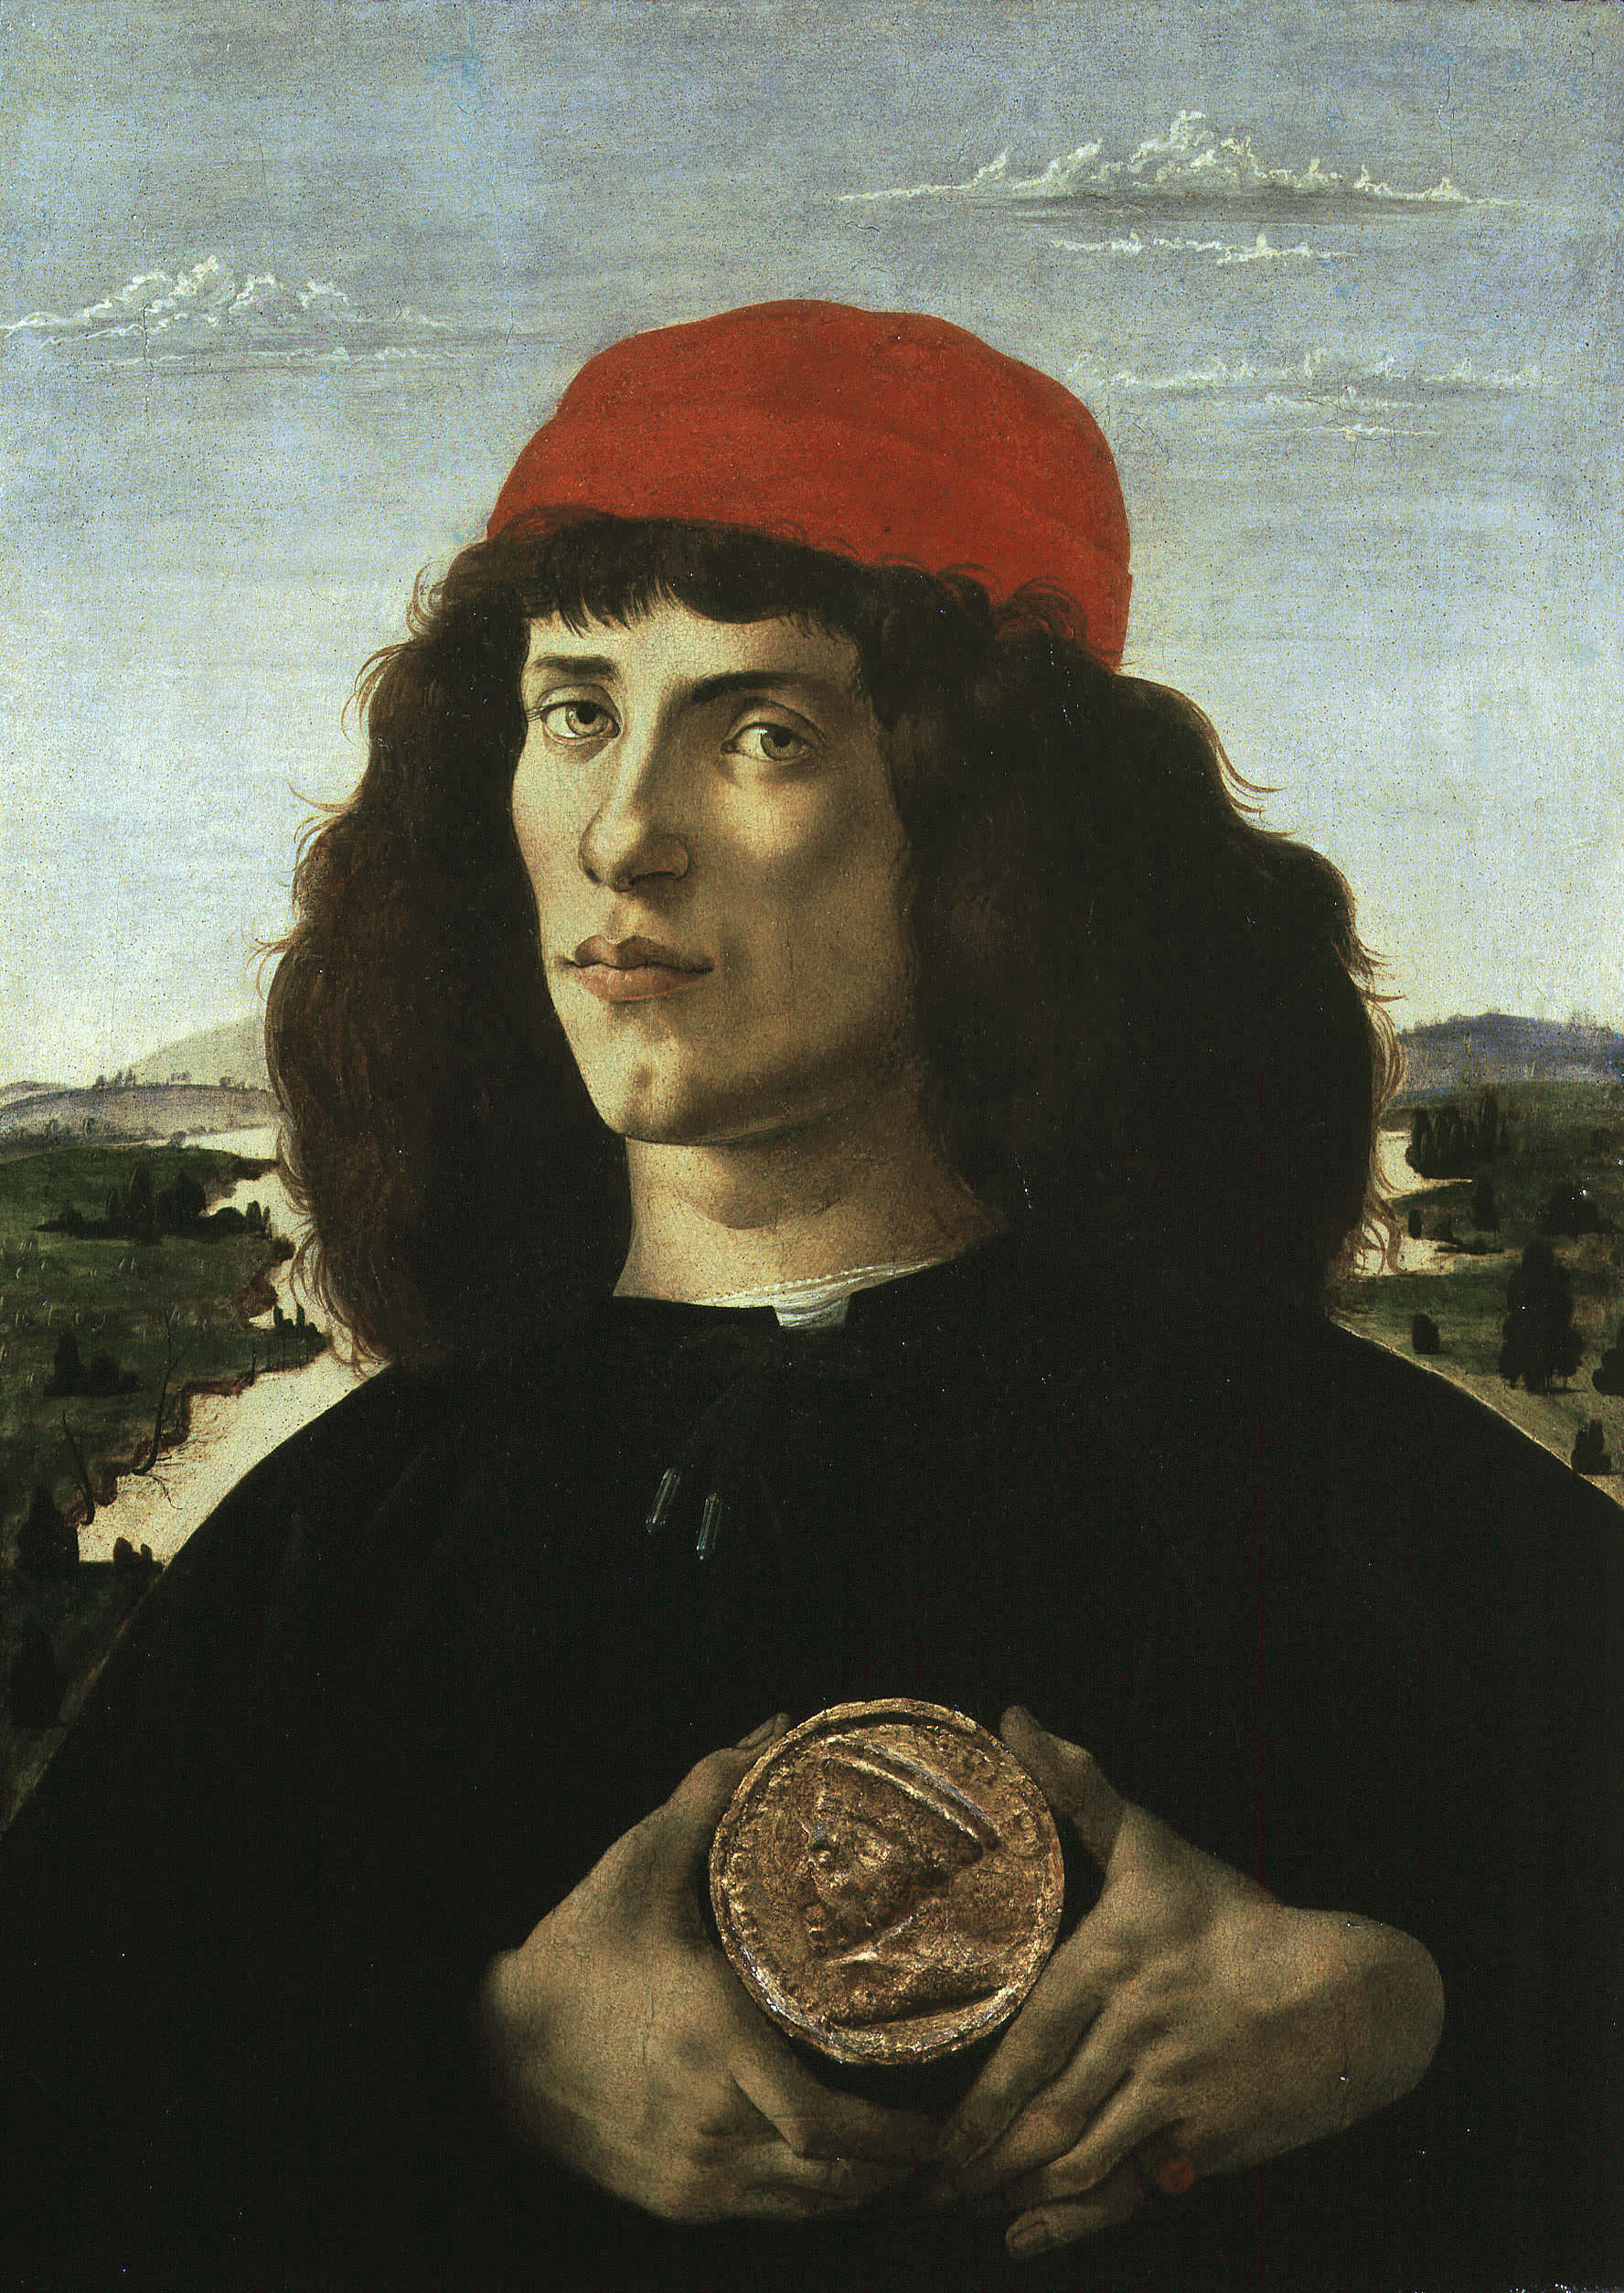 Sandro Botticelli<br /><i>Unknown Man, possibly the artist or his brother, with medal of Cosimo the Elder (1389–1464)</i>, 1474–5<br />Tempera on panel, 57.5 x 44 cm (22 3/5 x 17 3/10 in.)<br />Uffizi, Florence<br />Alfredo Dagli Orti/The Art Archive at Art Resource, NY